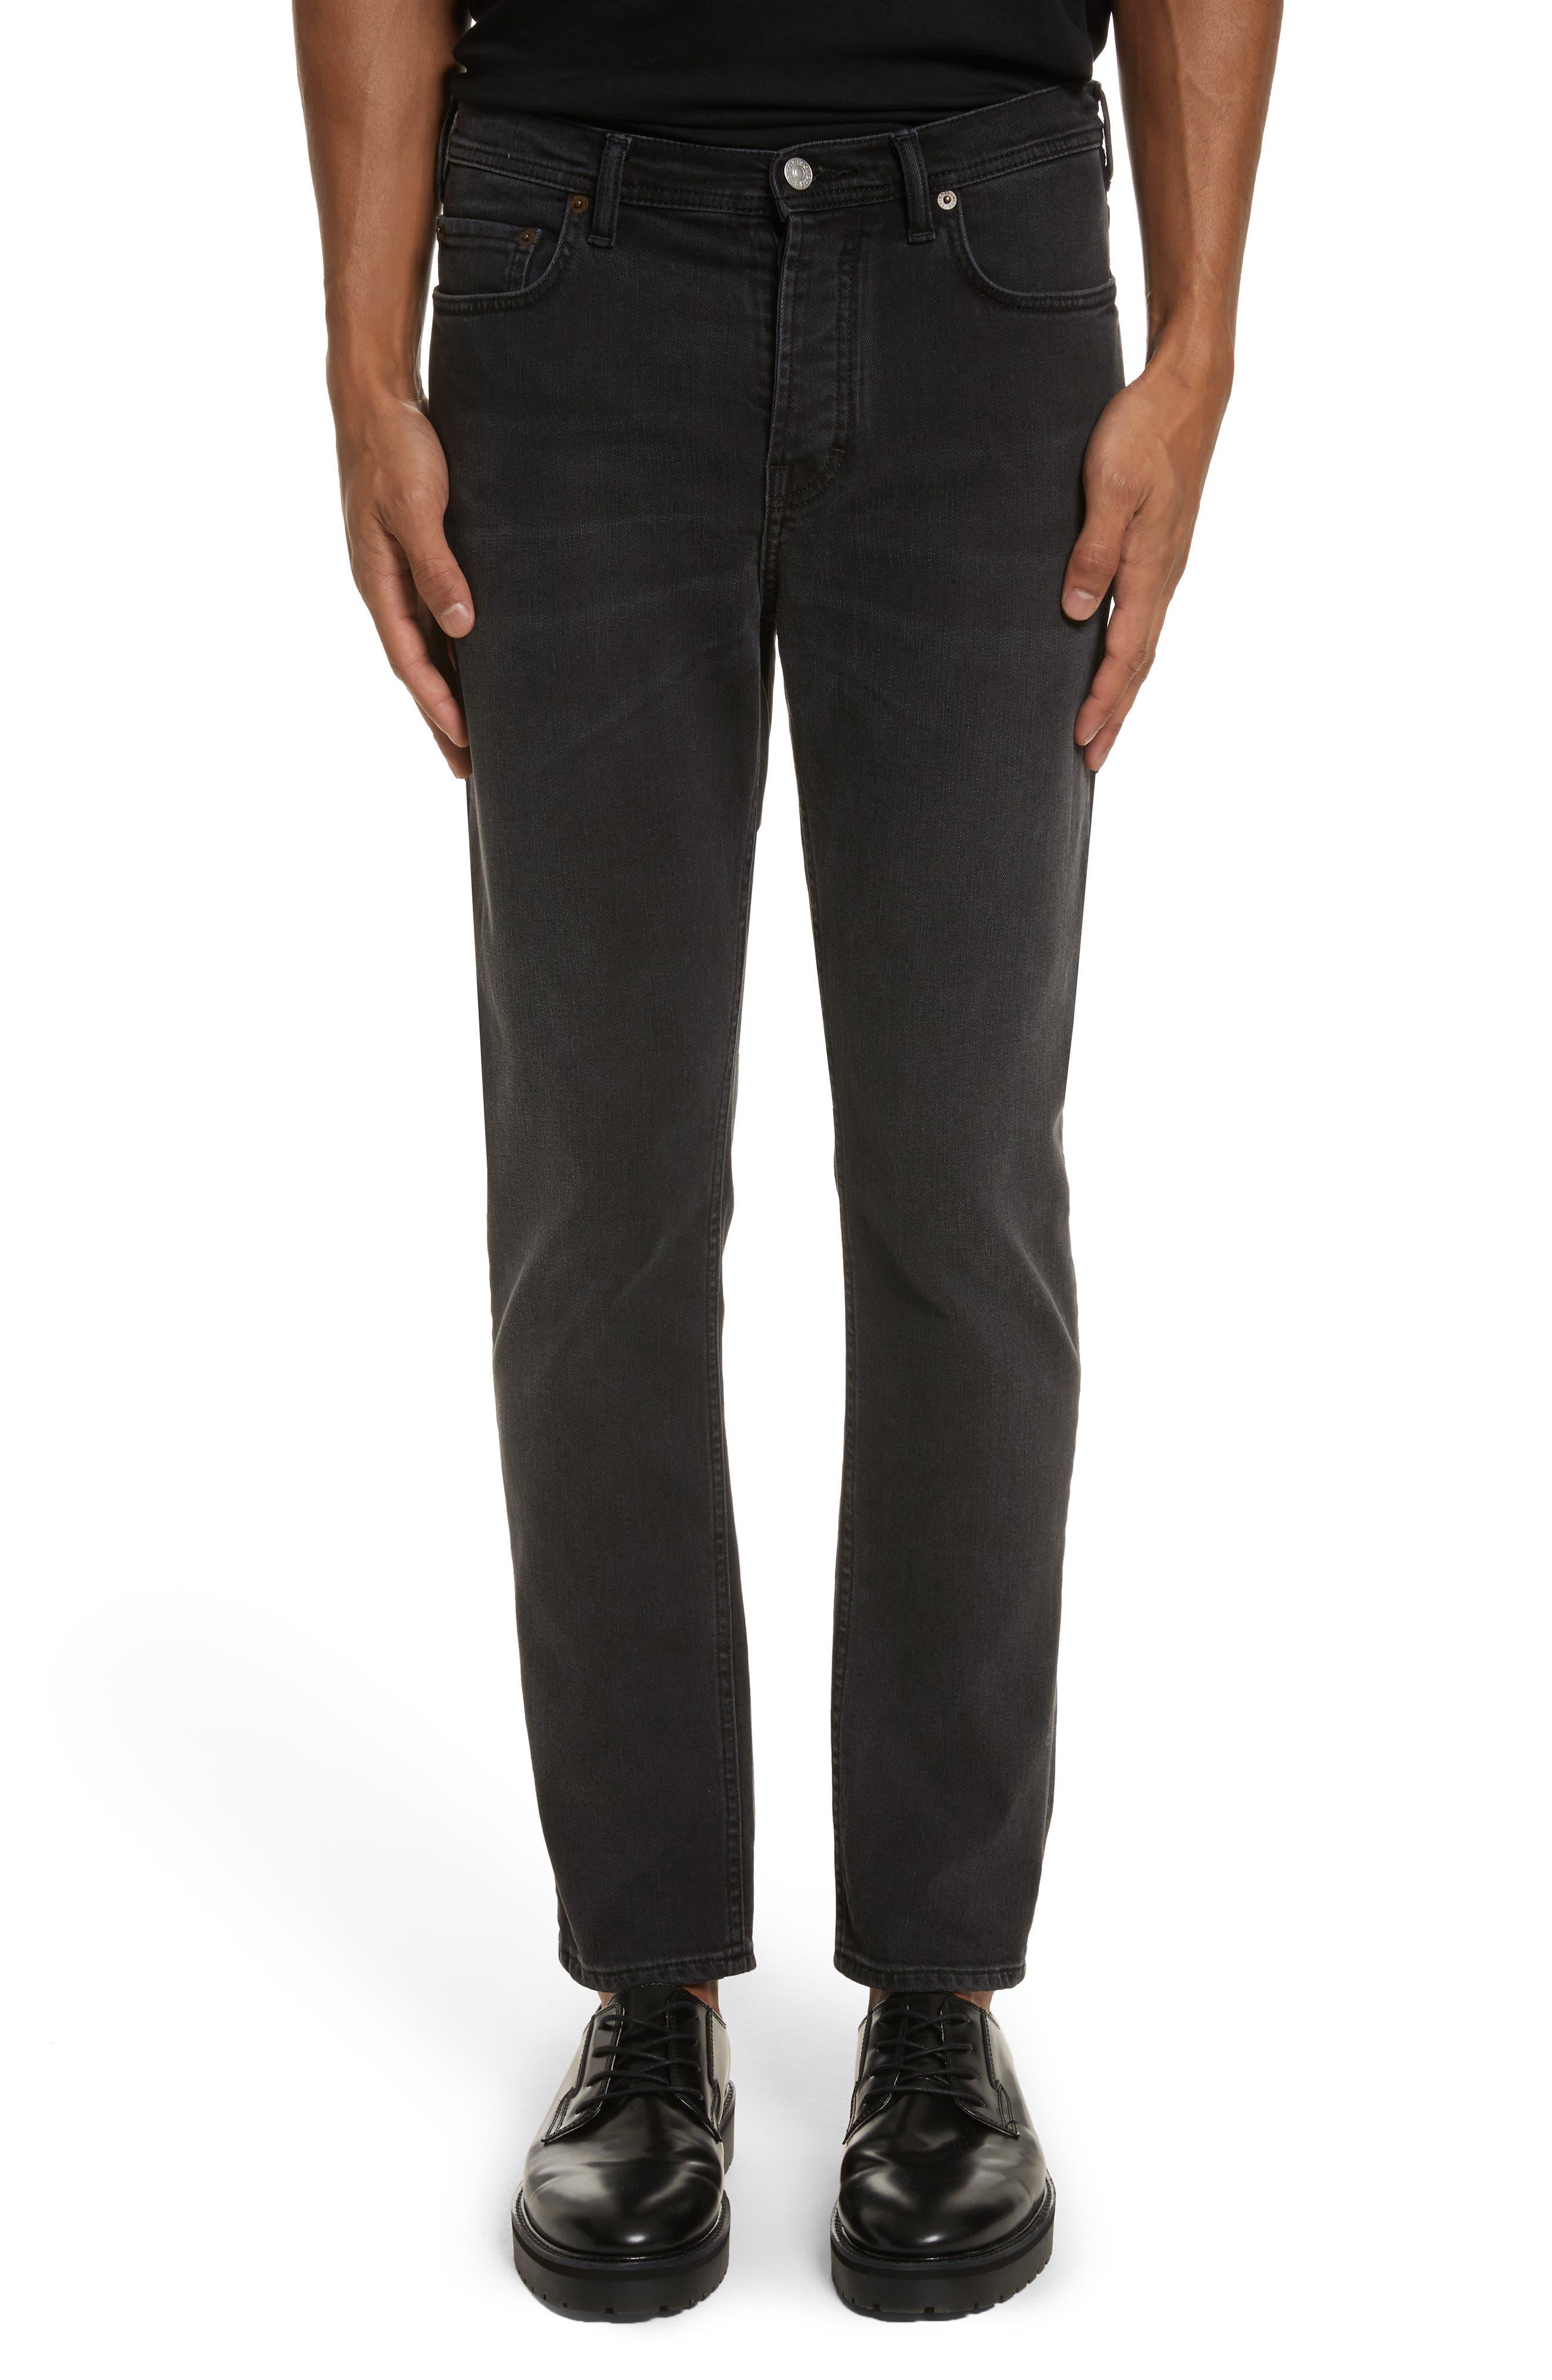 River Used Jeans,                         Main,                         color, 151 USED BLACK